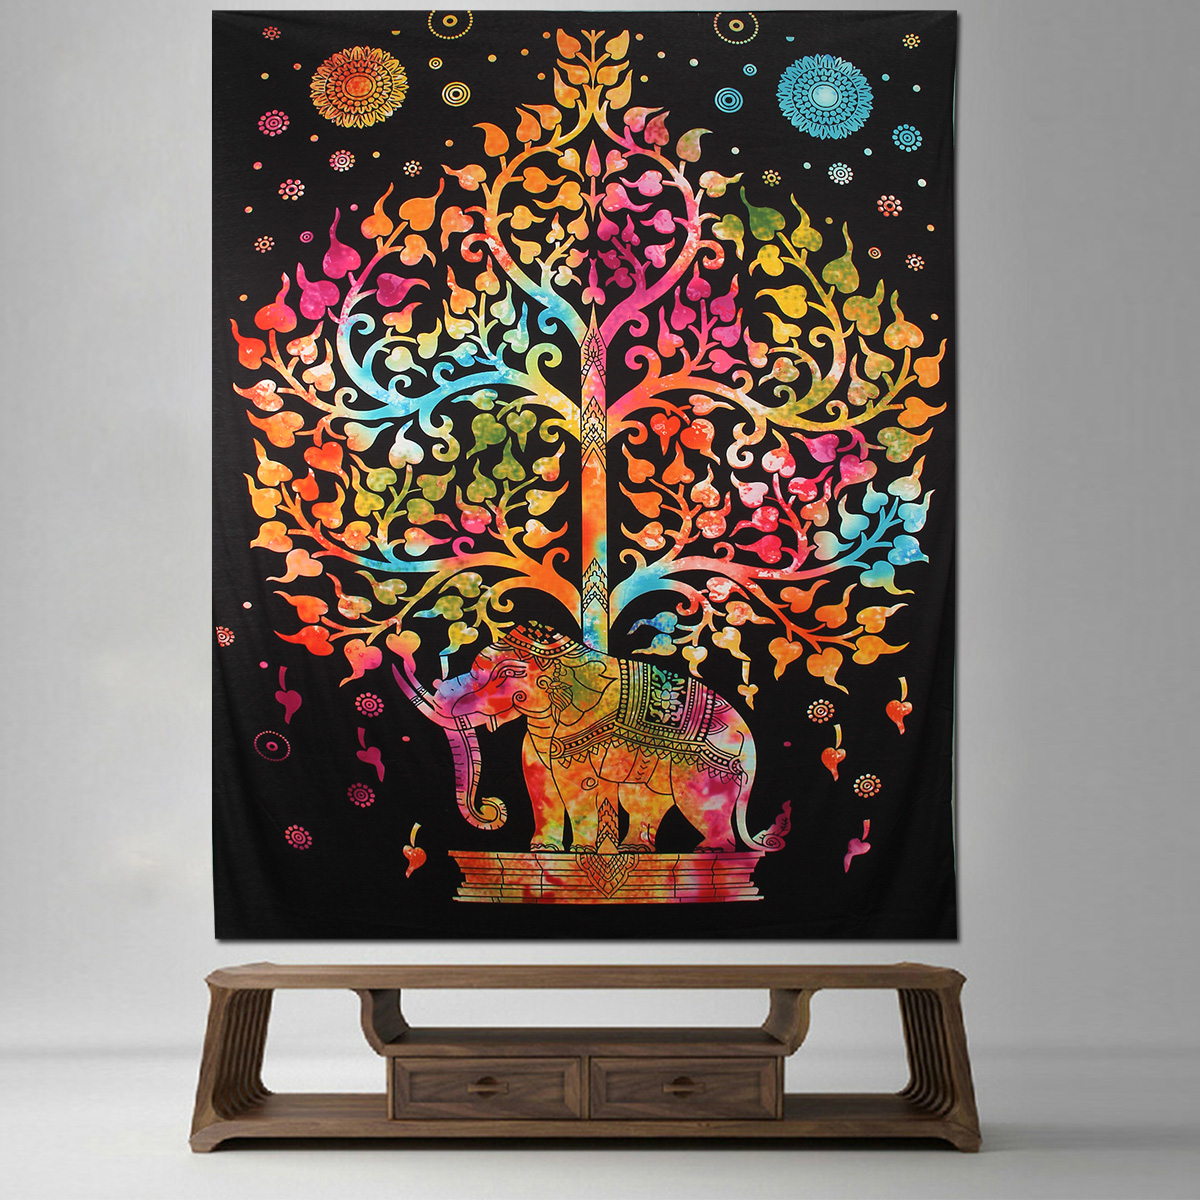 Elephant Mandala Tapestry Throw Towel Hippie Tapestry Floral Printed Home Decor Wall Tapestries Bedspread 210*150CM 26